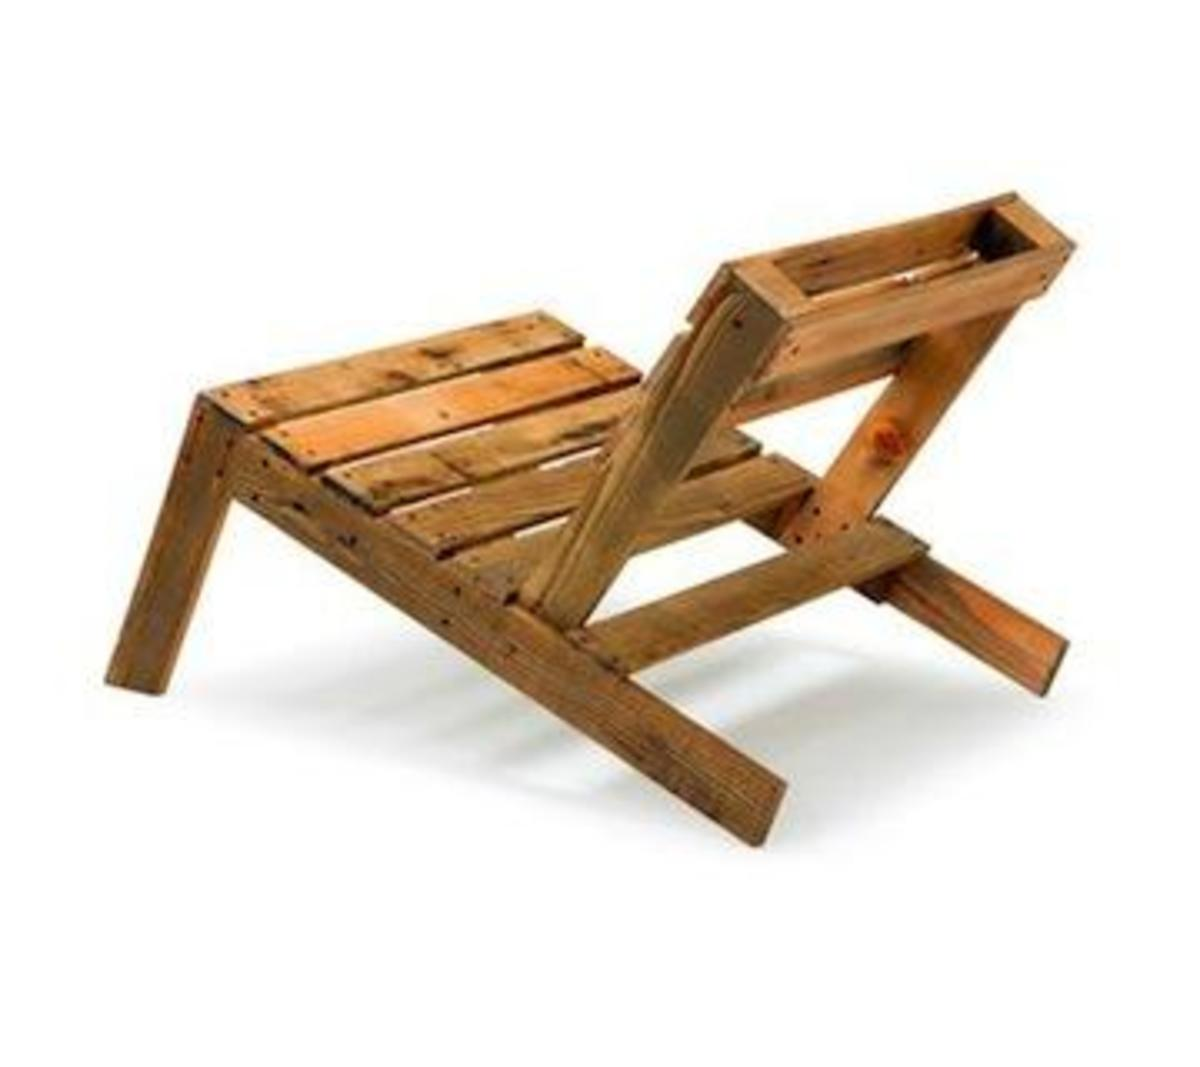 Pallet furniture is a great option for upcycled furniture!